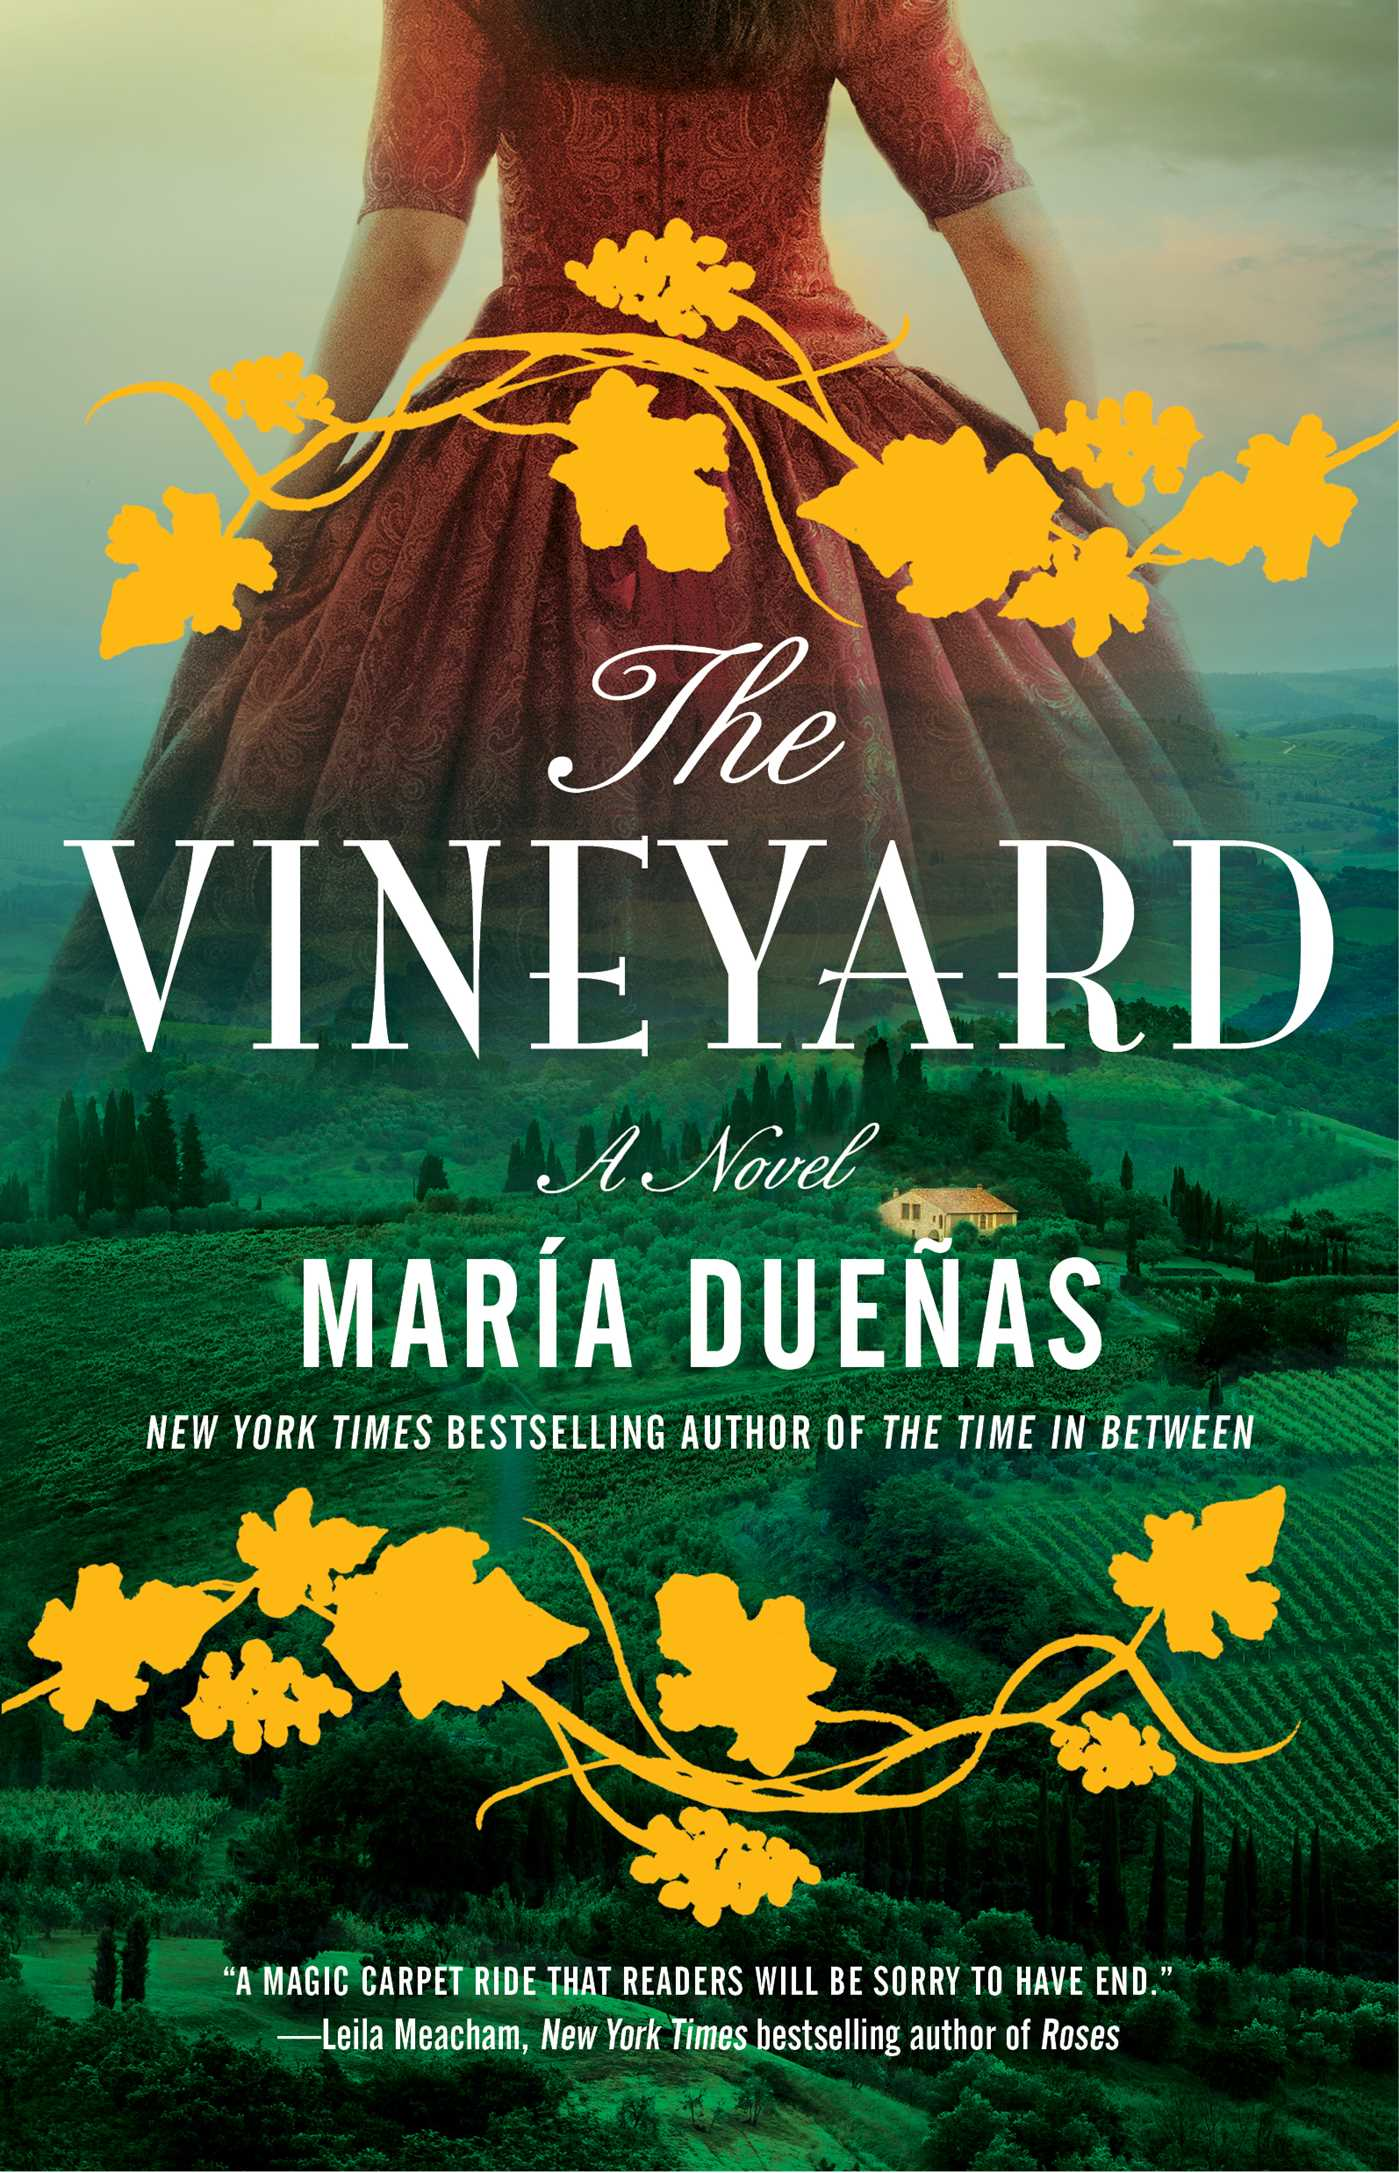 The vineyard 9781501124549 hr